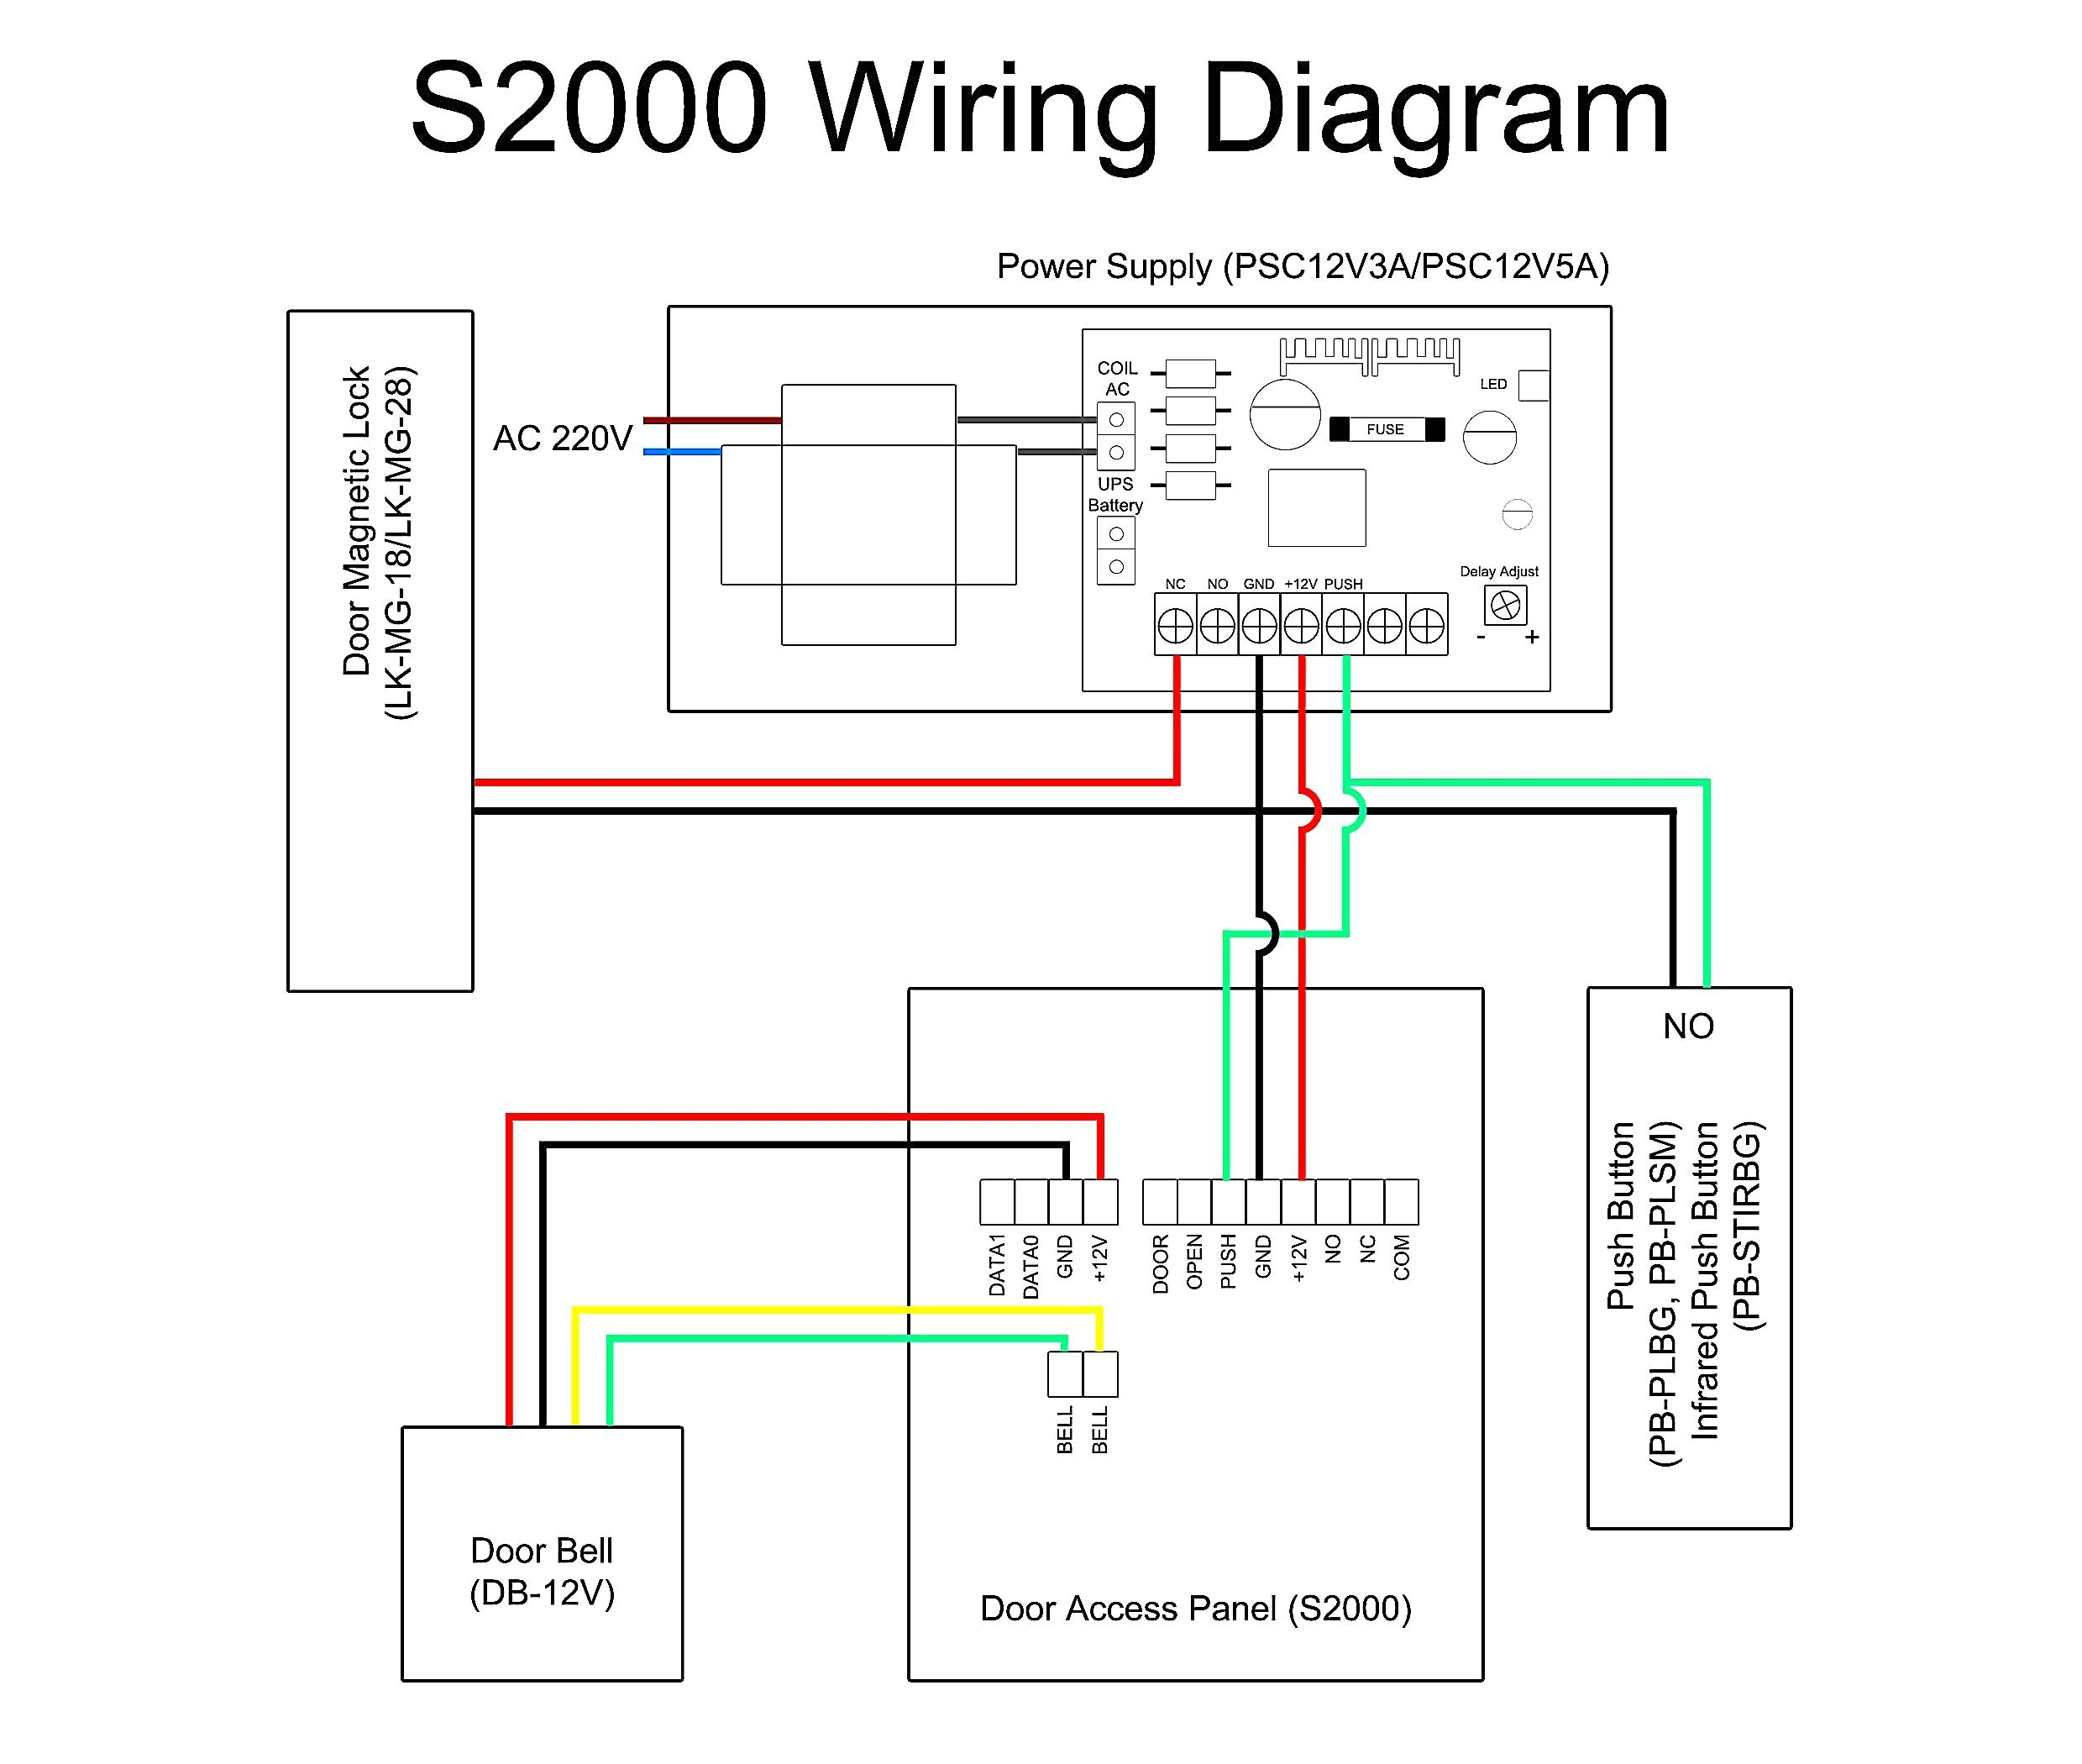 DIAGRAM] Rs485 Ptz Wiring Diagram FULL Version HD Quality Wiring Diagram -  AIDDIAGRAM.FESTIVALACQUEDOTTE.ITAcquedotte